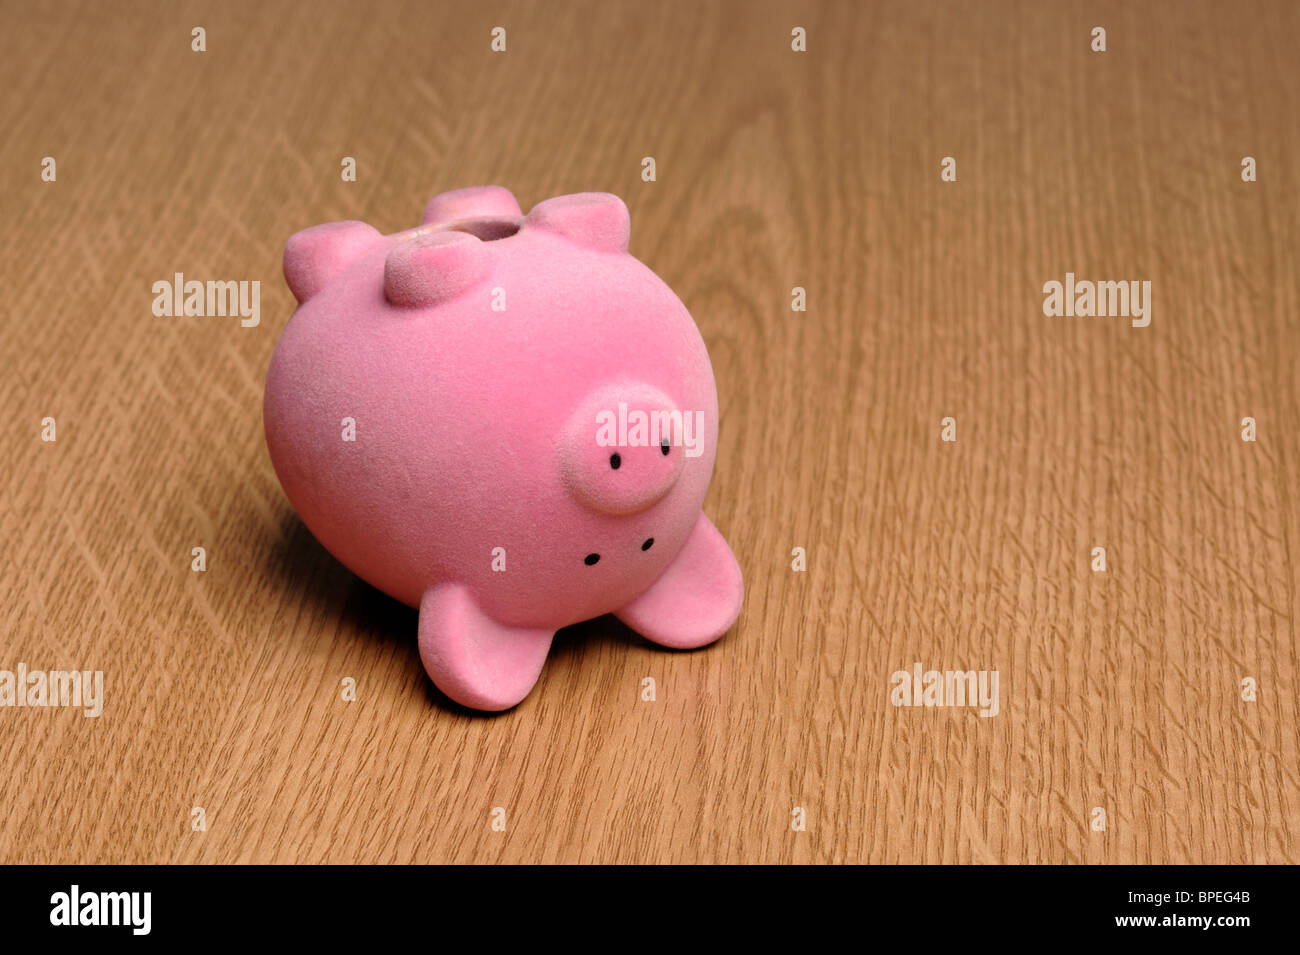 Upside down piggy bank - Stock Image